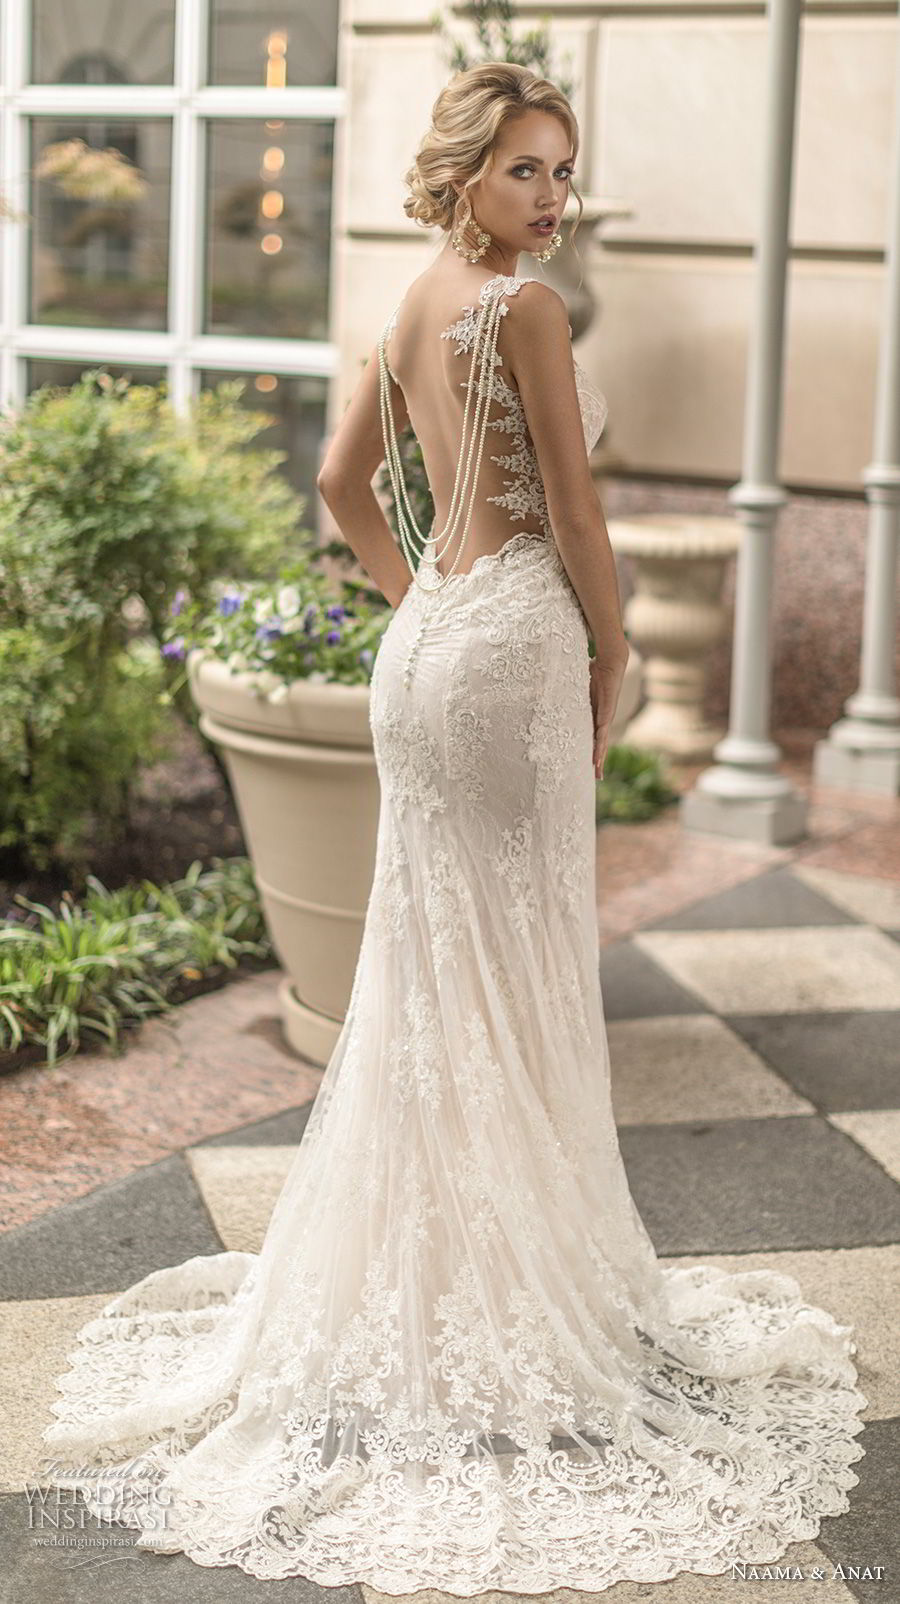 Naama Amp Anat Spring 2019 Wedding Dresses Dancing Up The